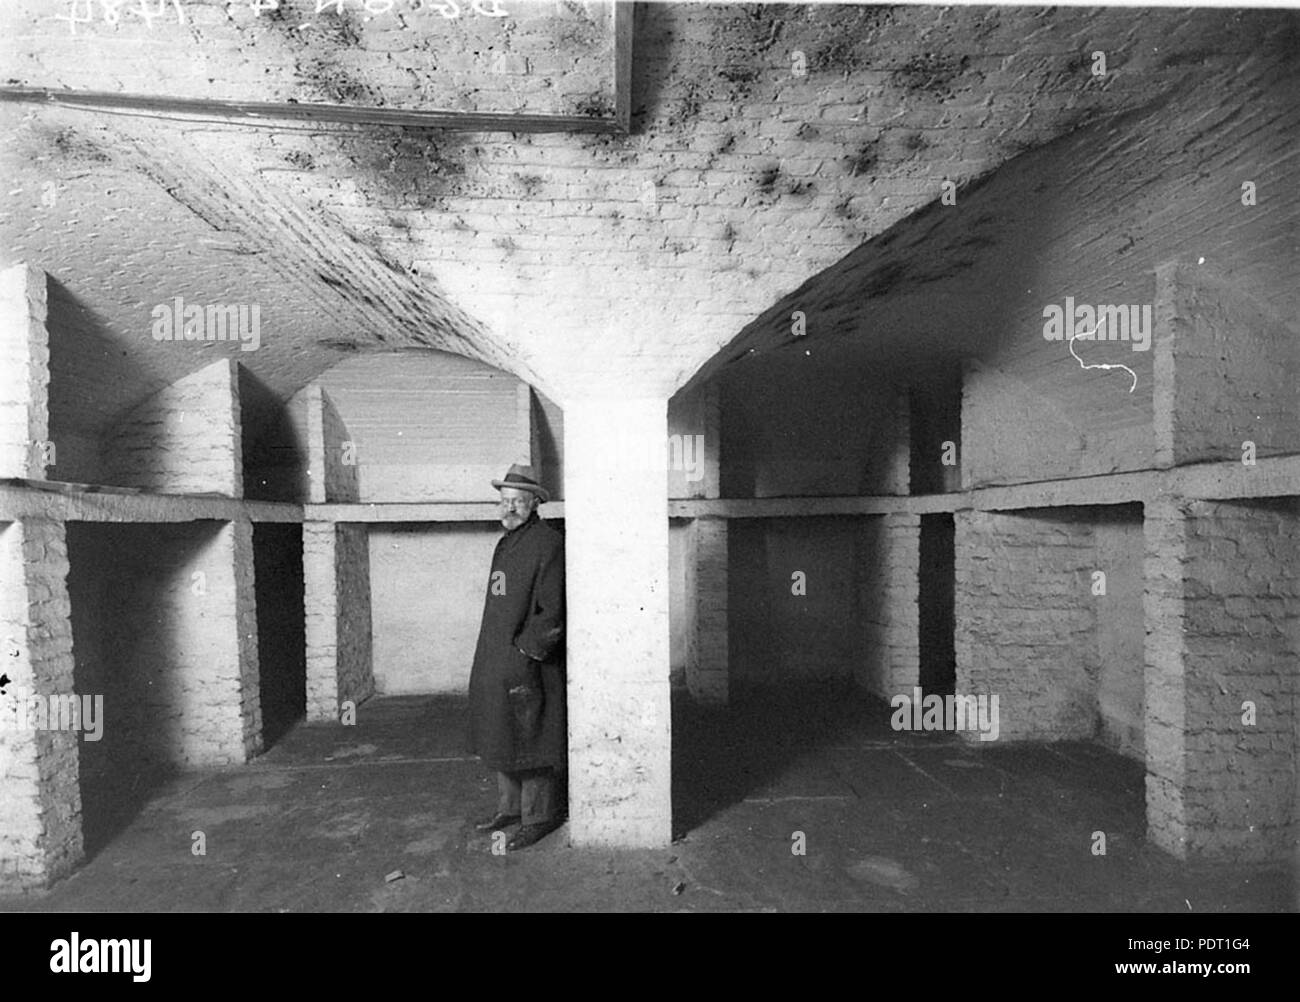 190 SLNSW 8400 The crypt a bearded man in picture - Stock Image